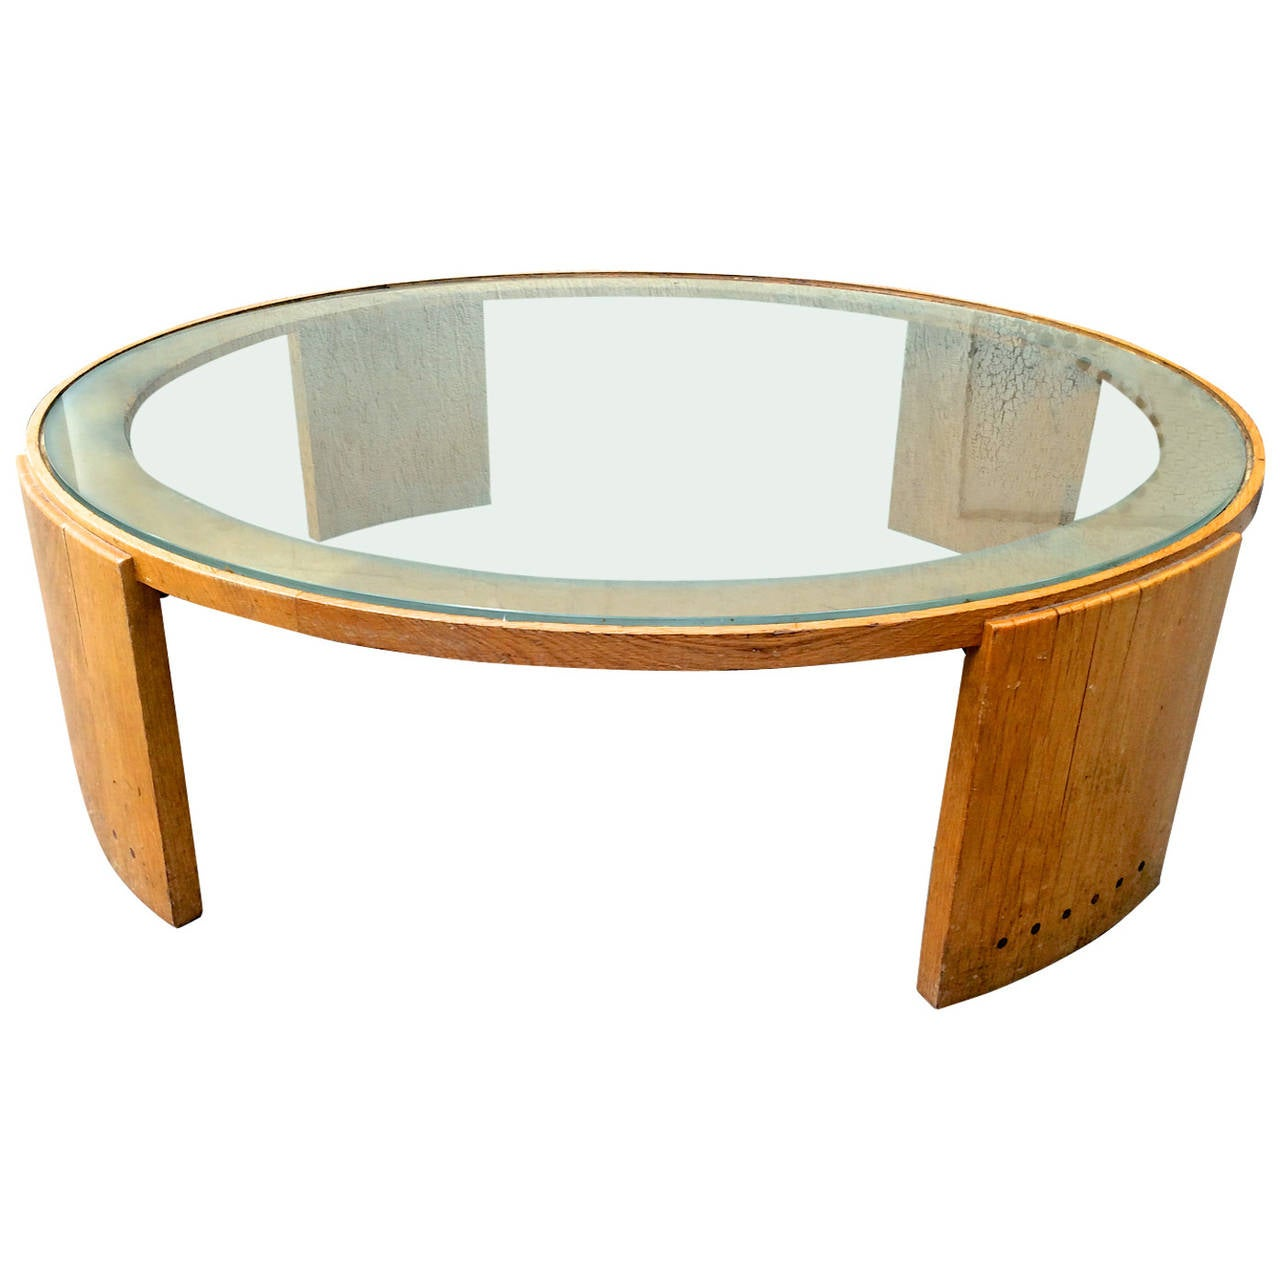 Jacques adnet very large round coffee table in oak and for Large round glass top coffee table